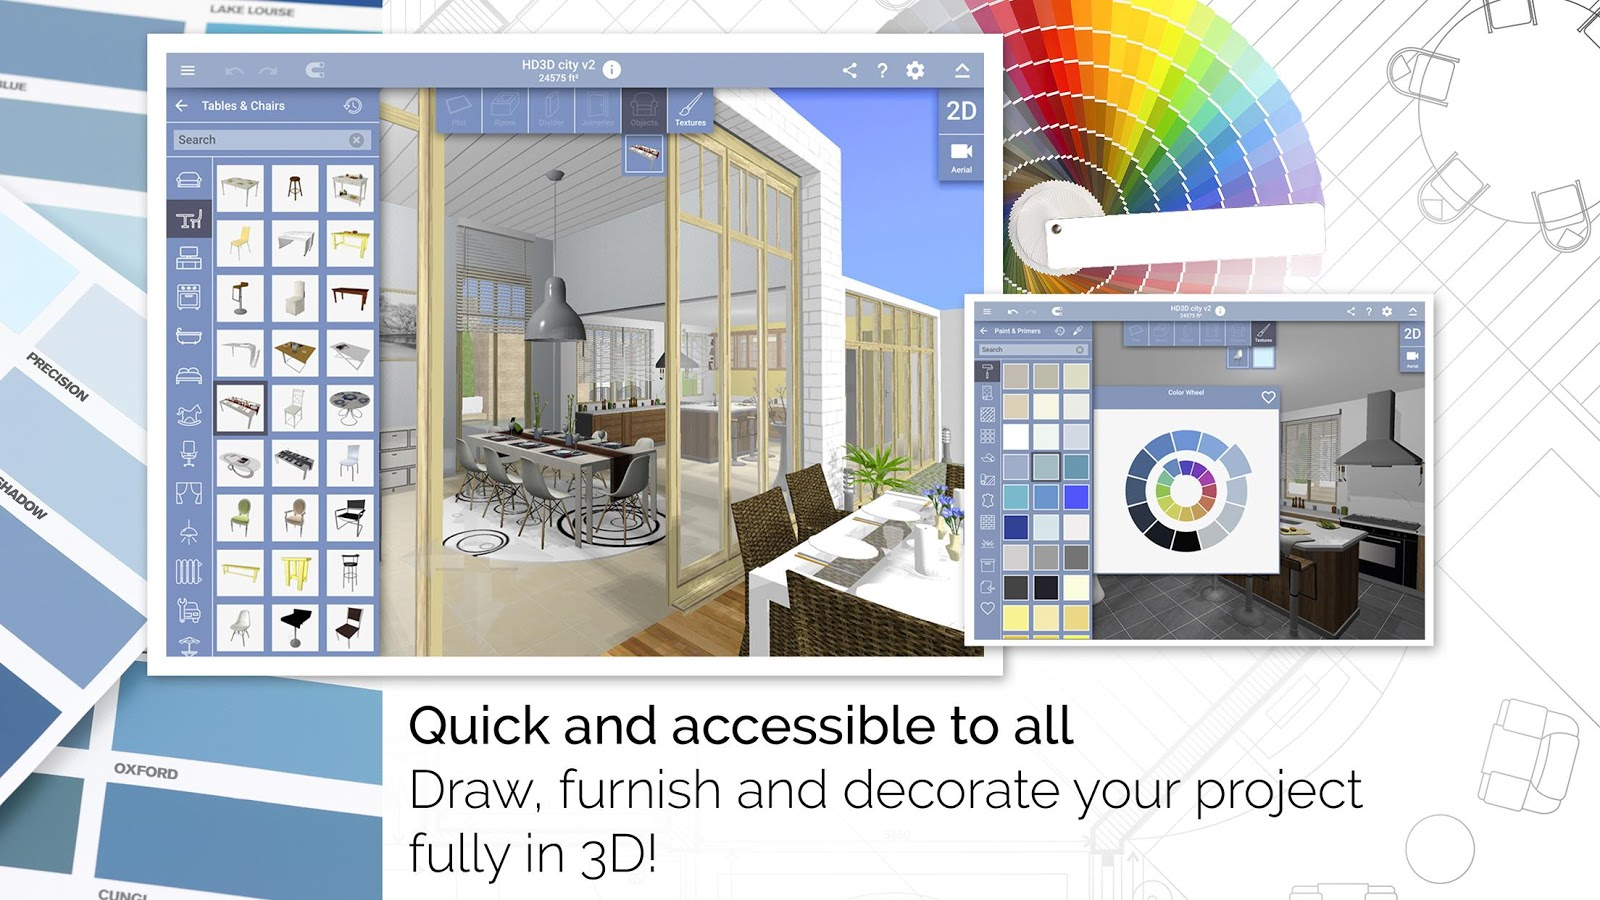 Home Design 3d Freemium Android Apps On Google Play: hd home design 3d